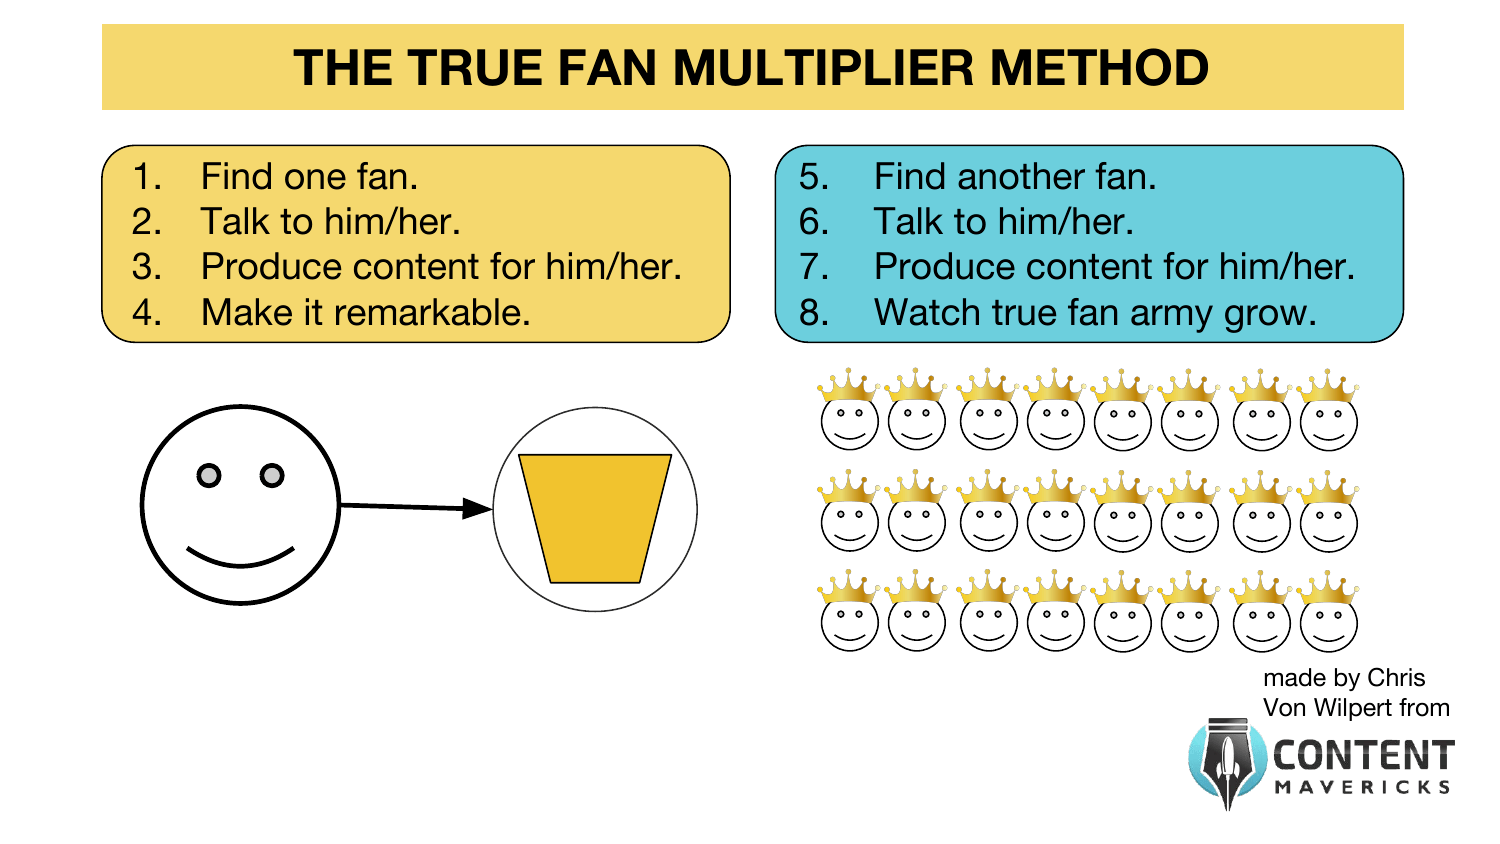 true fan multiplier method image